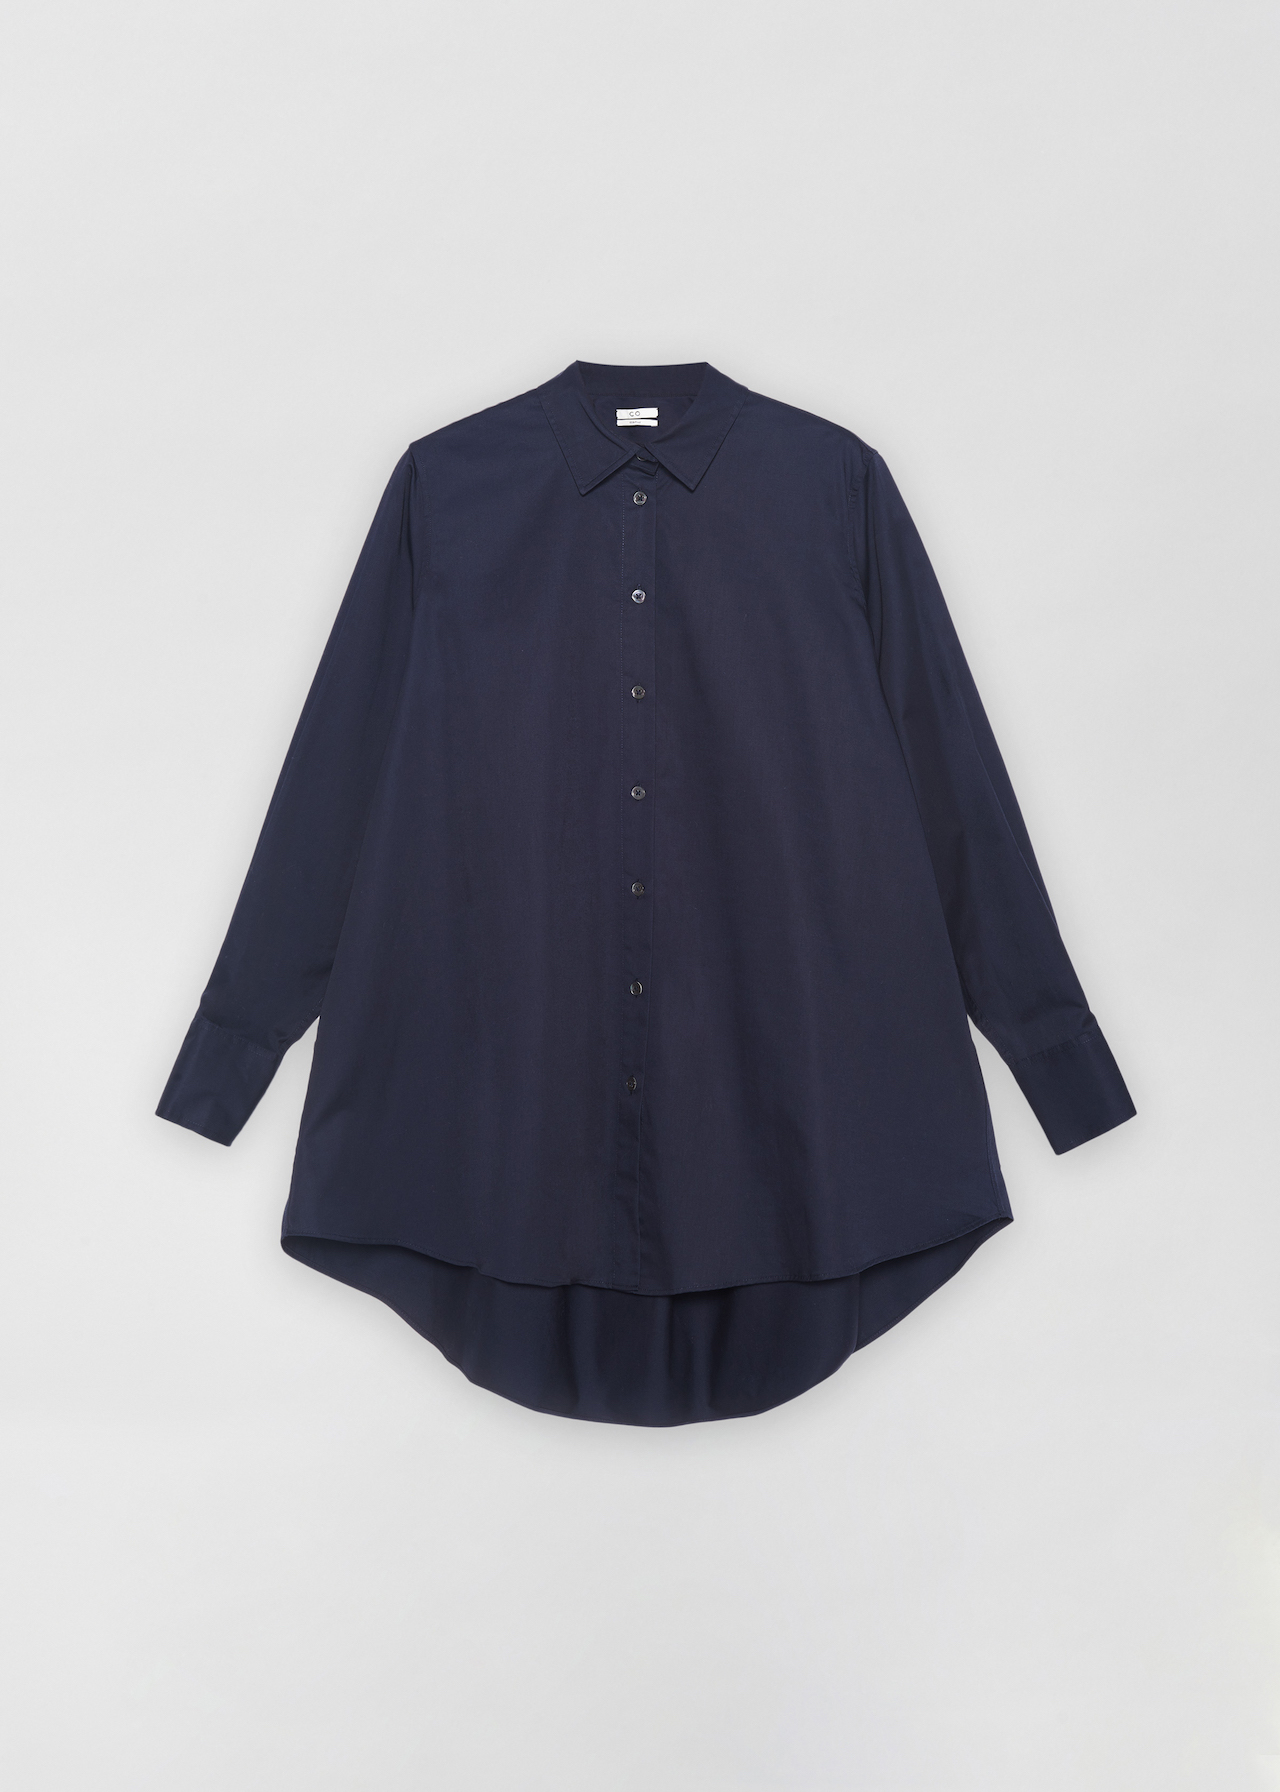 A-Line Button Down Shirt - White in Navy by Co Collections